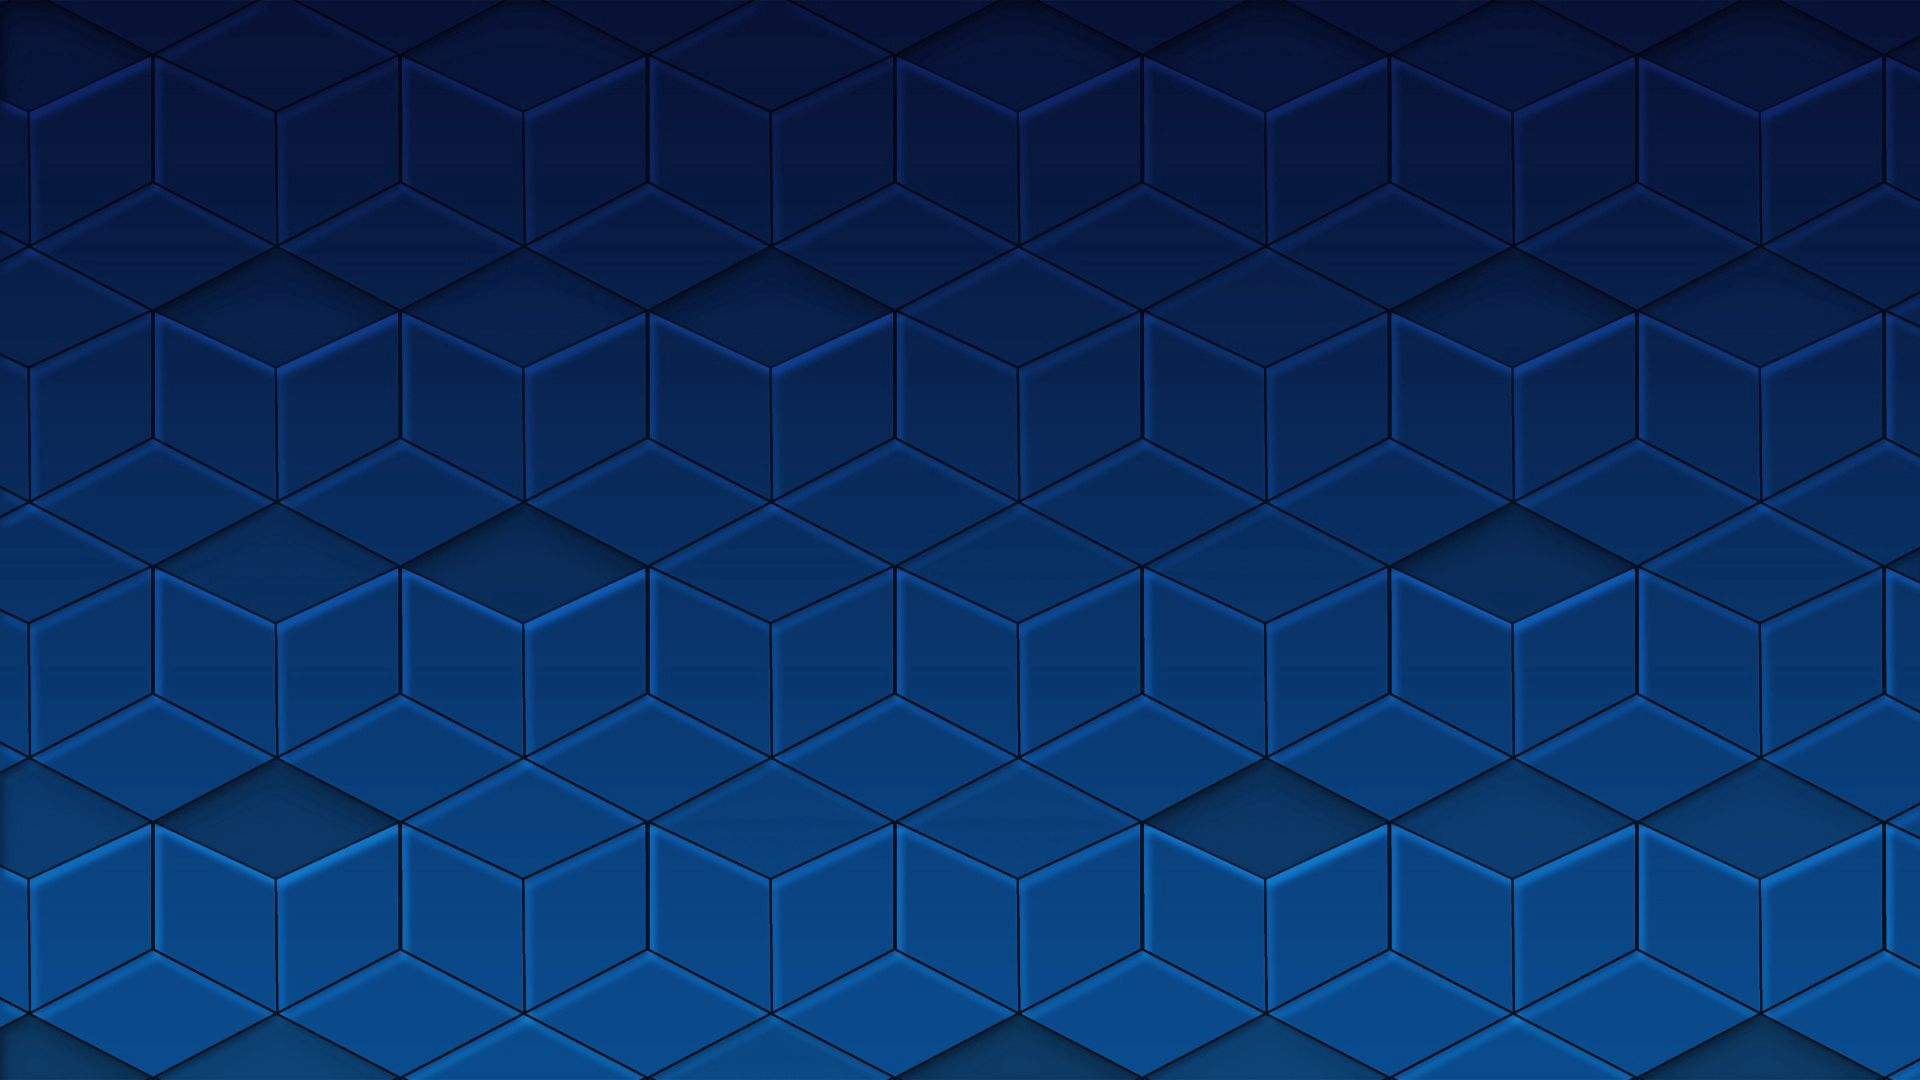 105291 download wallpaper Textures, Shine, Light, Texture, Form, Color, Forms, Shapes, Shape screensavers and pictures for free